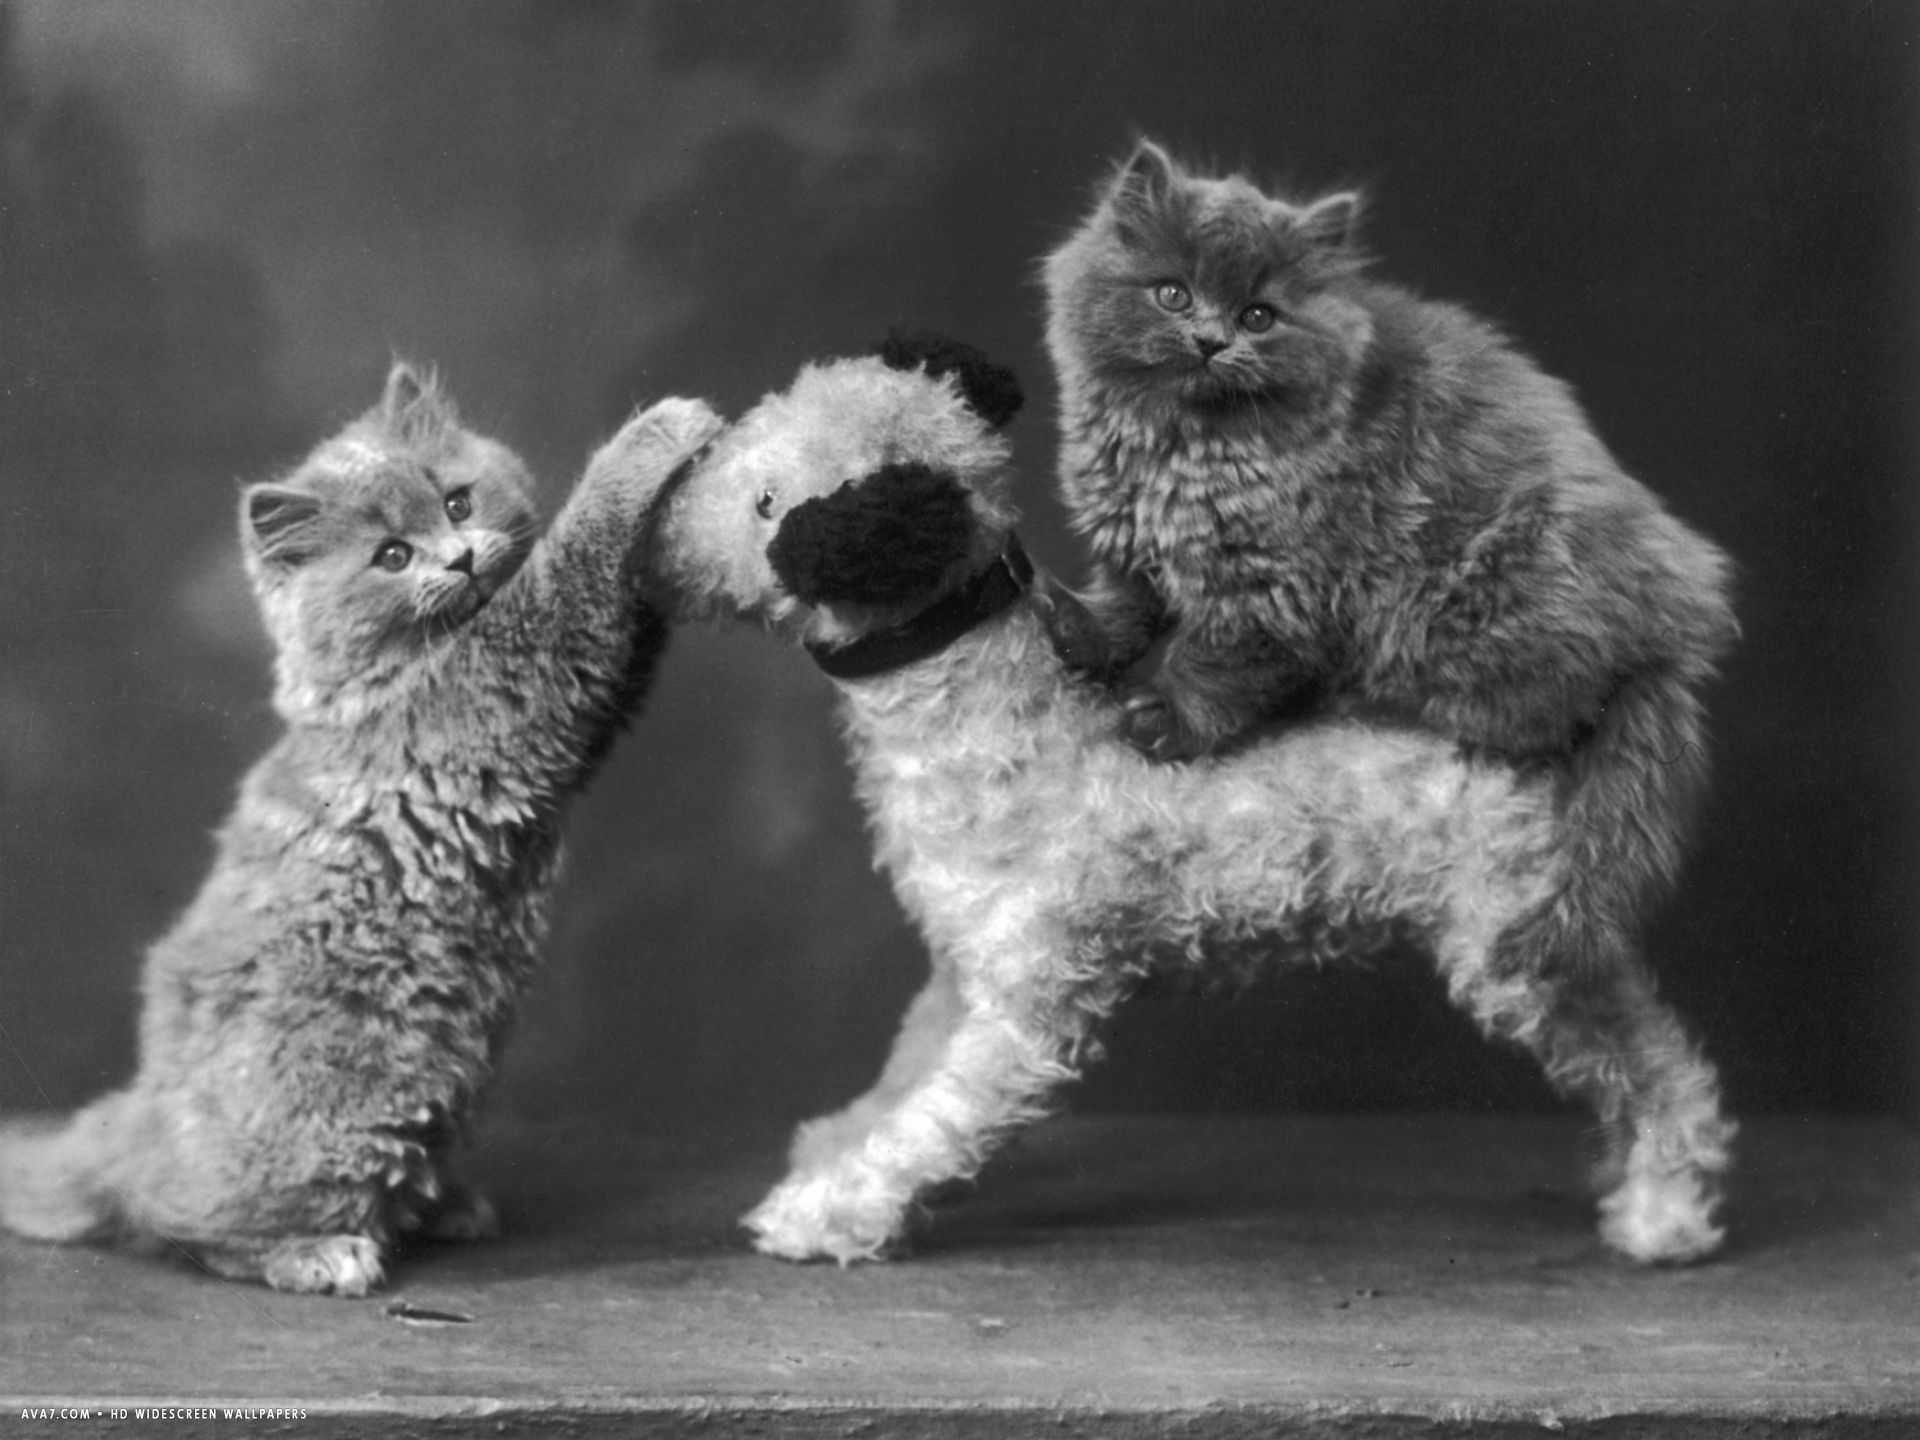 two kittens have fun with a toy dog